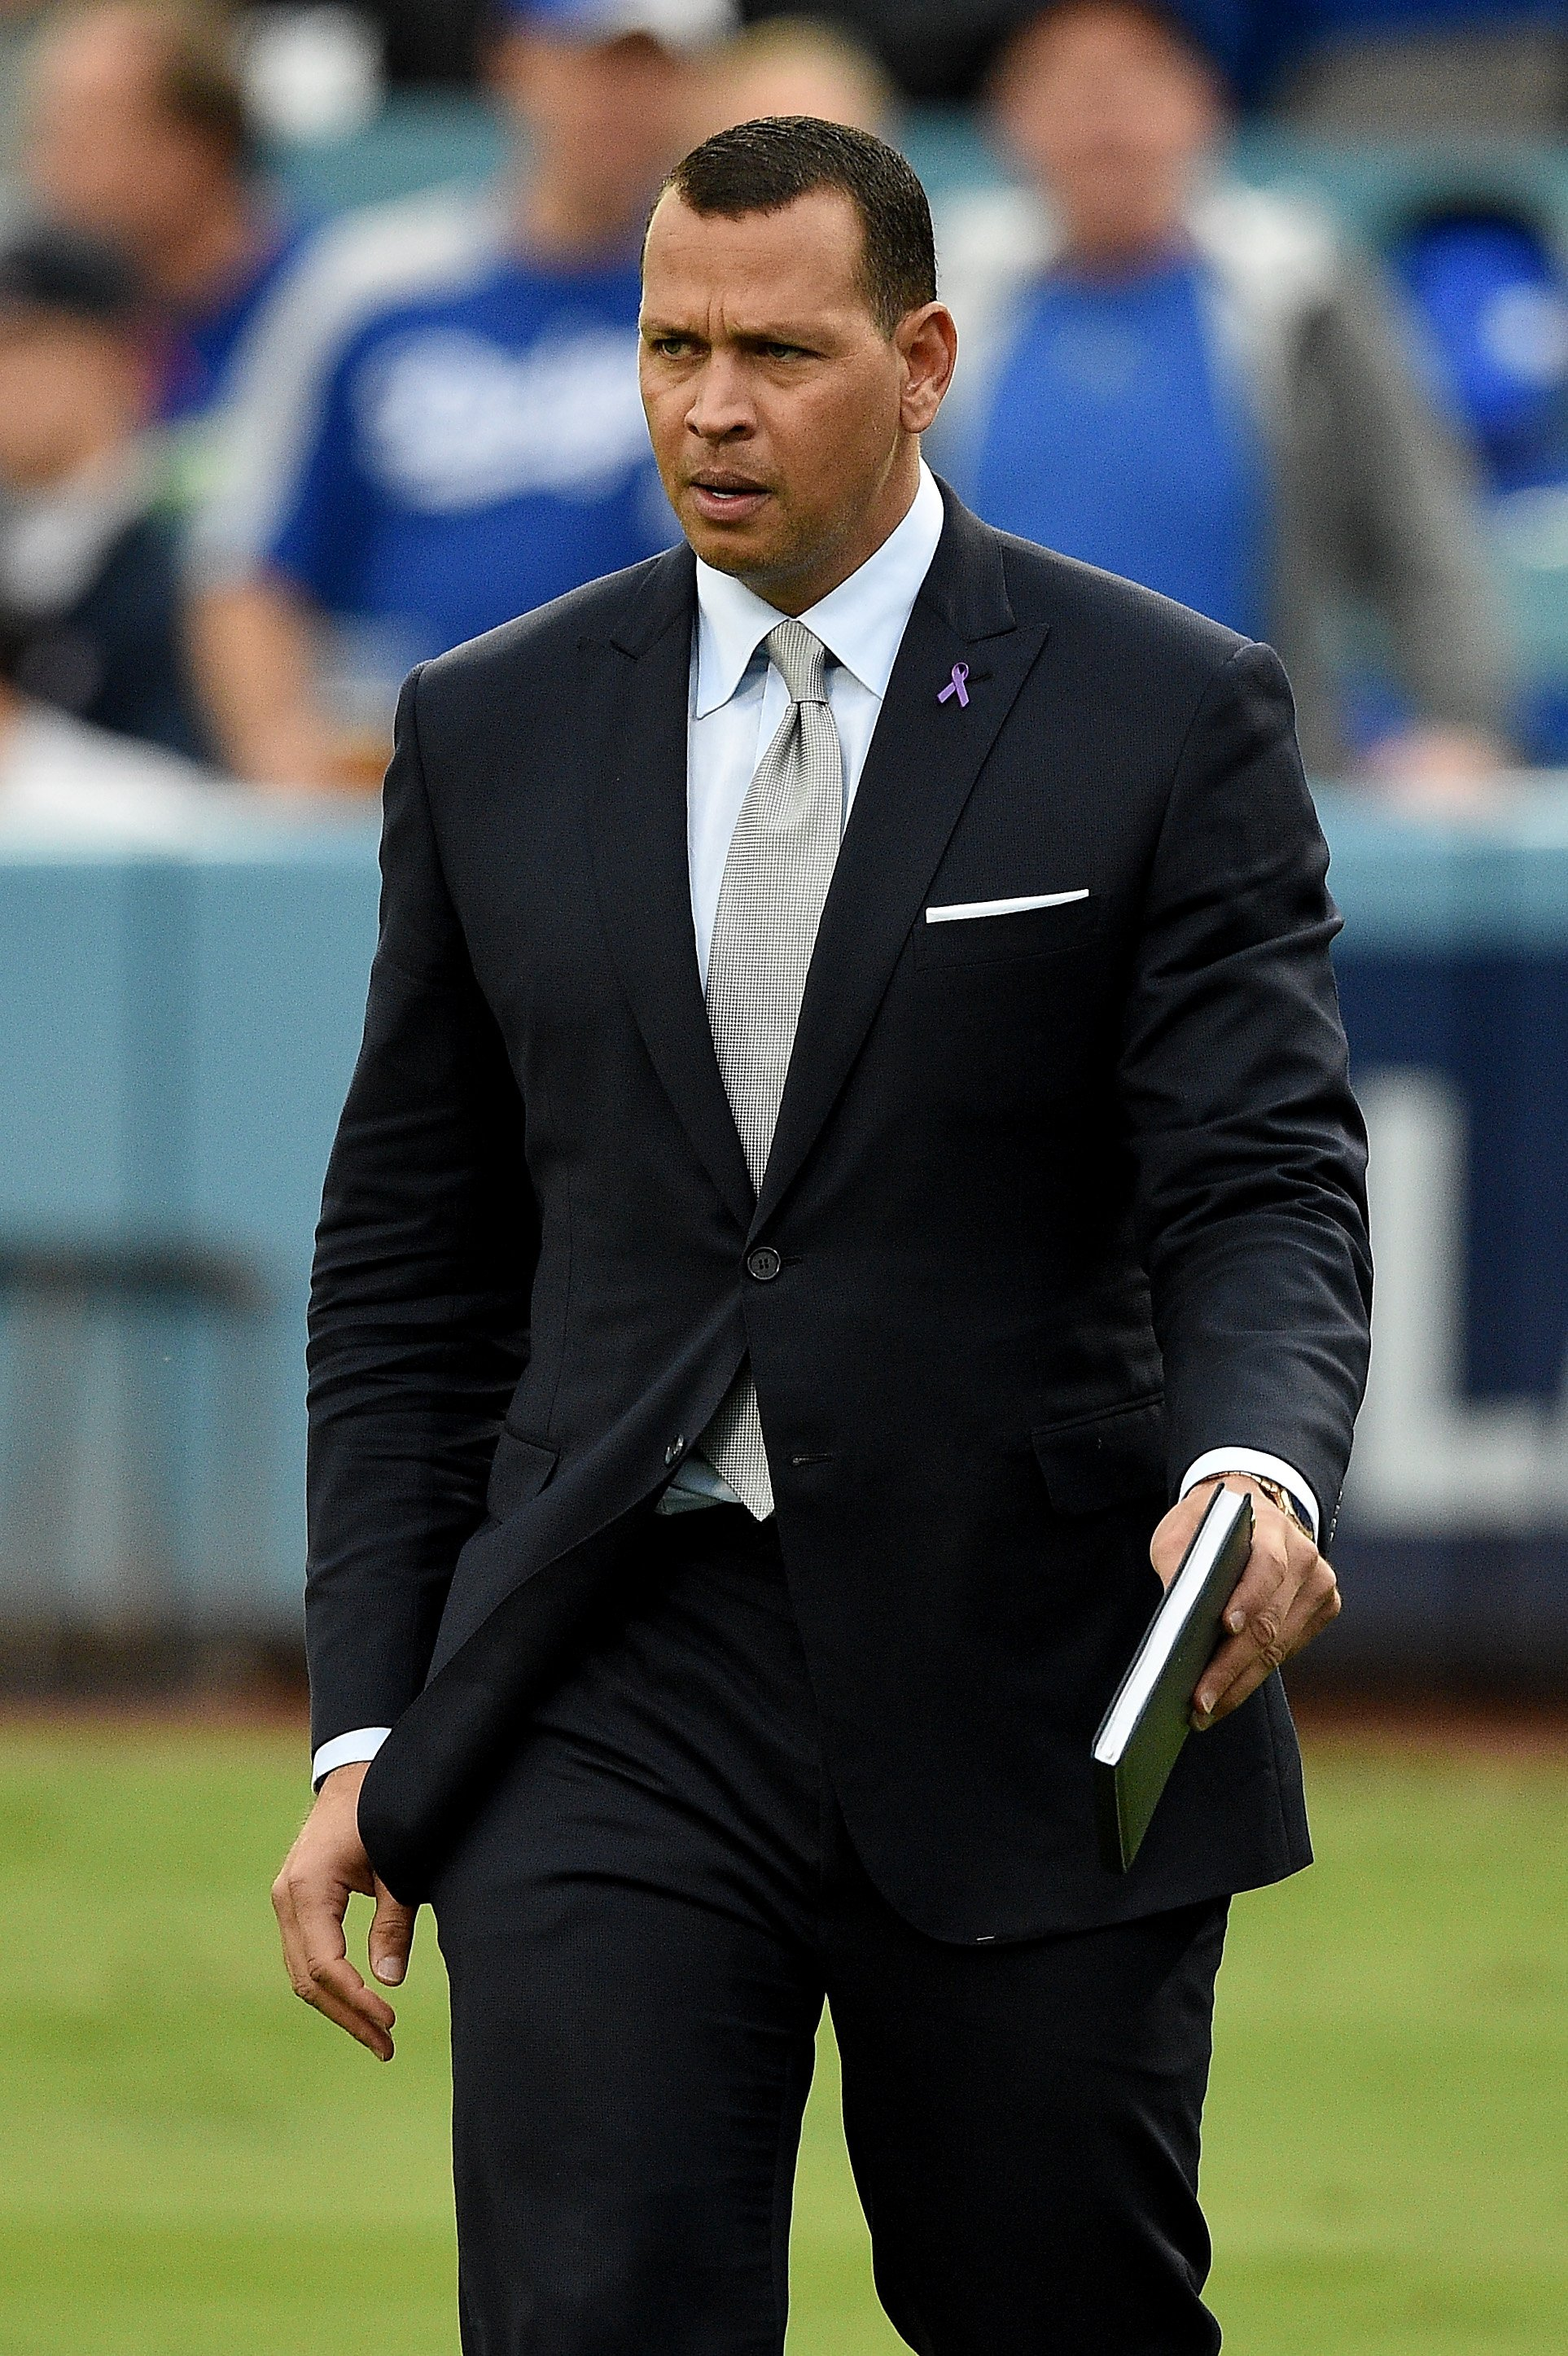 Alex Rodriguez walking before game six of the World Series between the Houston Astros and the Los Angeles Dodgers at Dodger Stadium on October 31, 2017 in Los Angeles, California | Photo: Getty Images